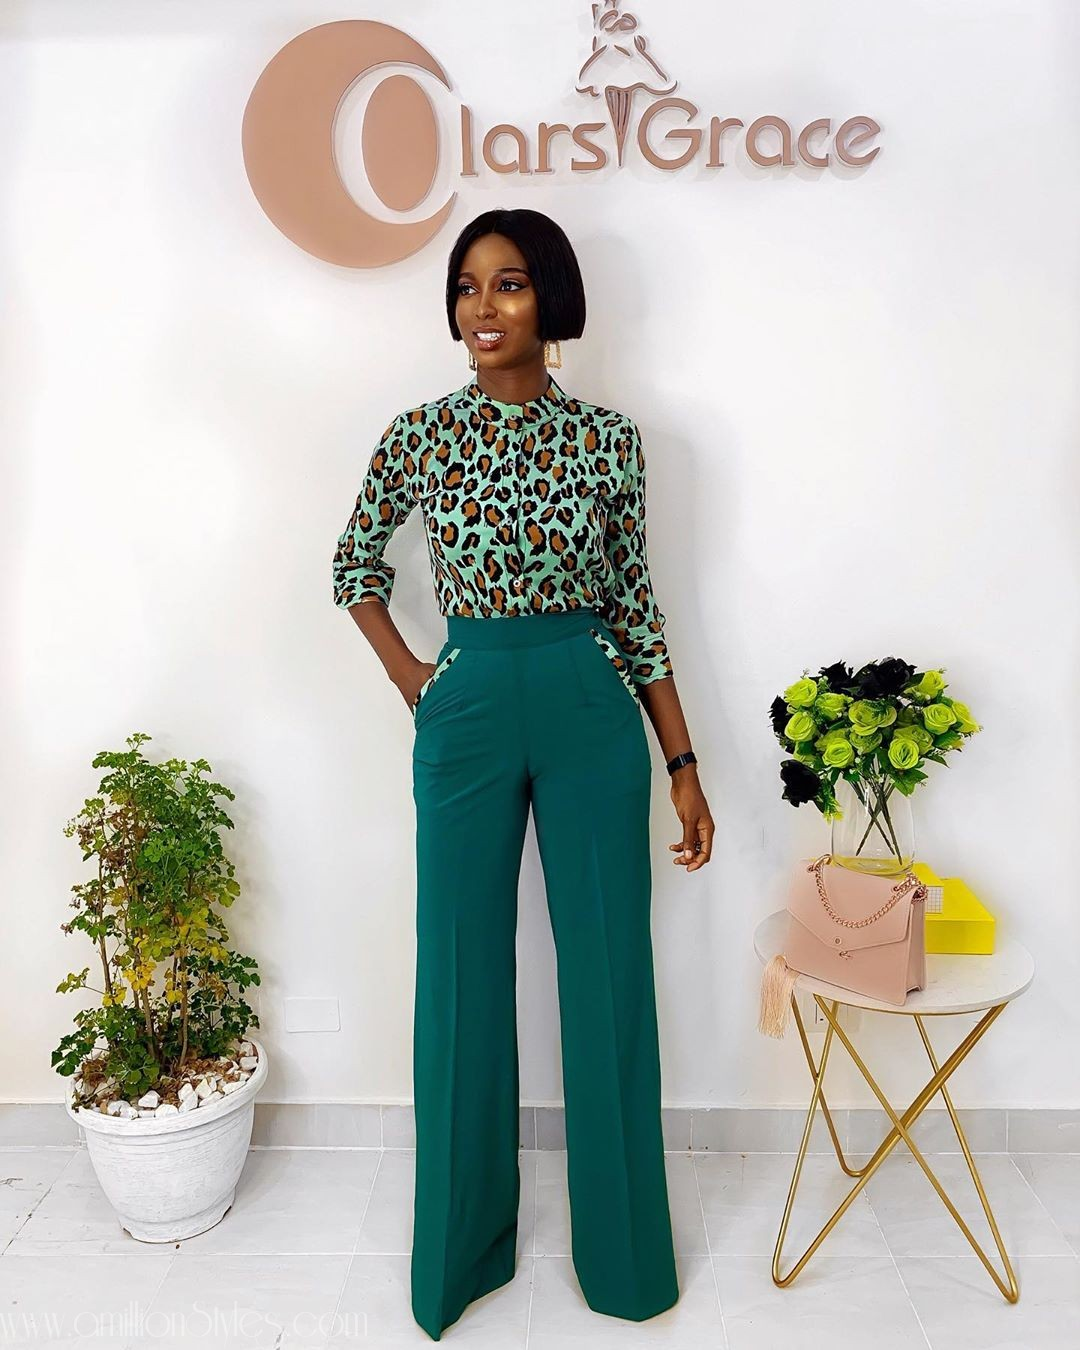 10 Savvy Chics Rocking Corporate Styles